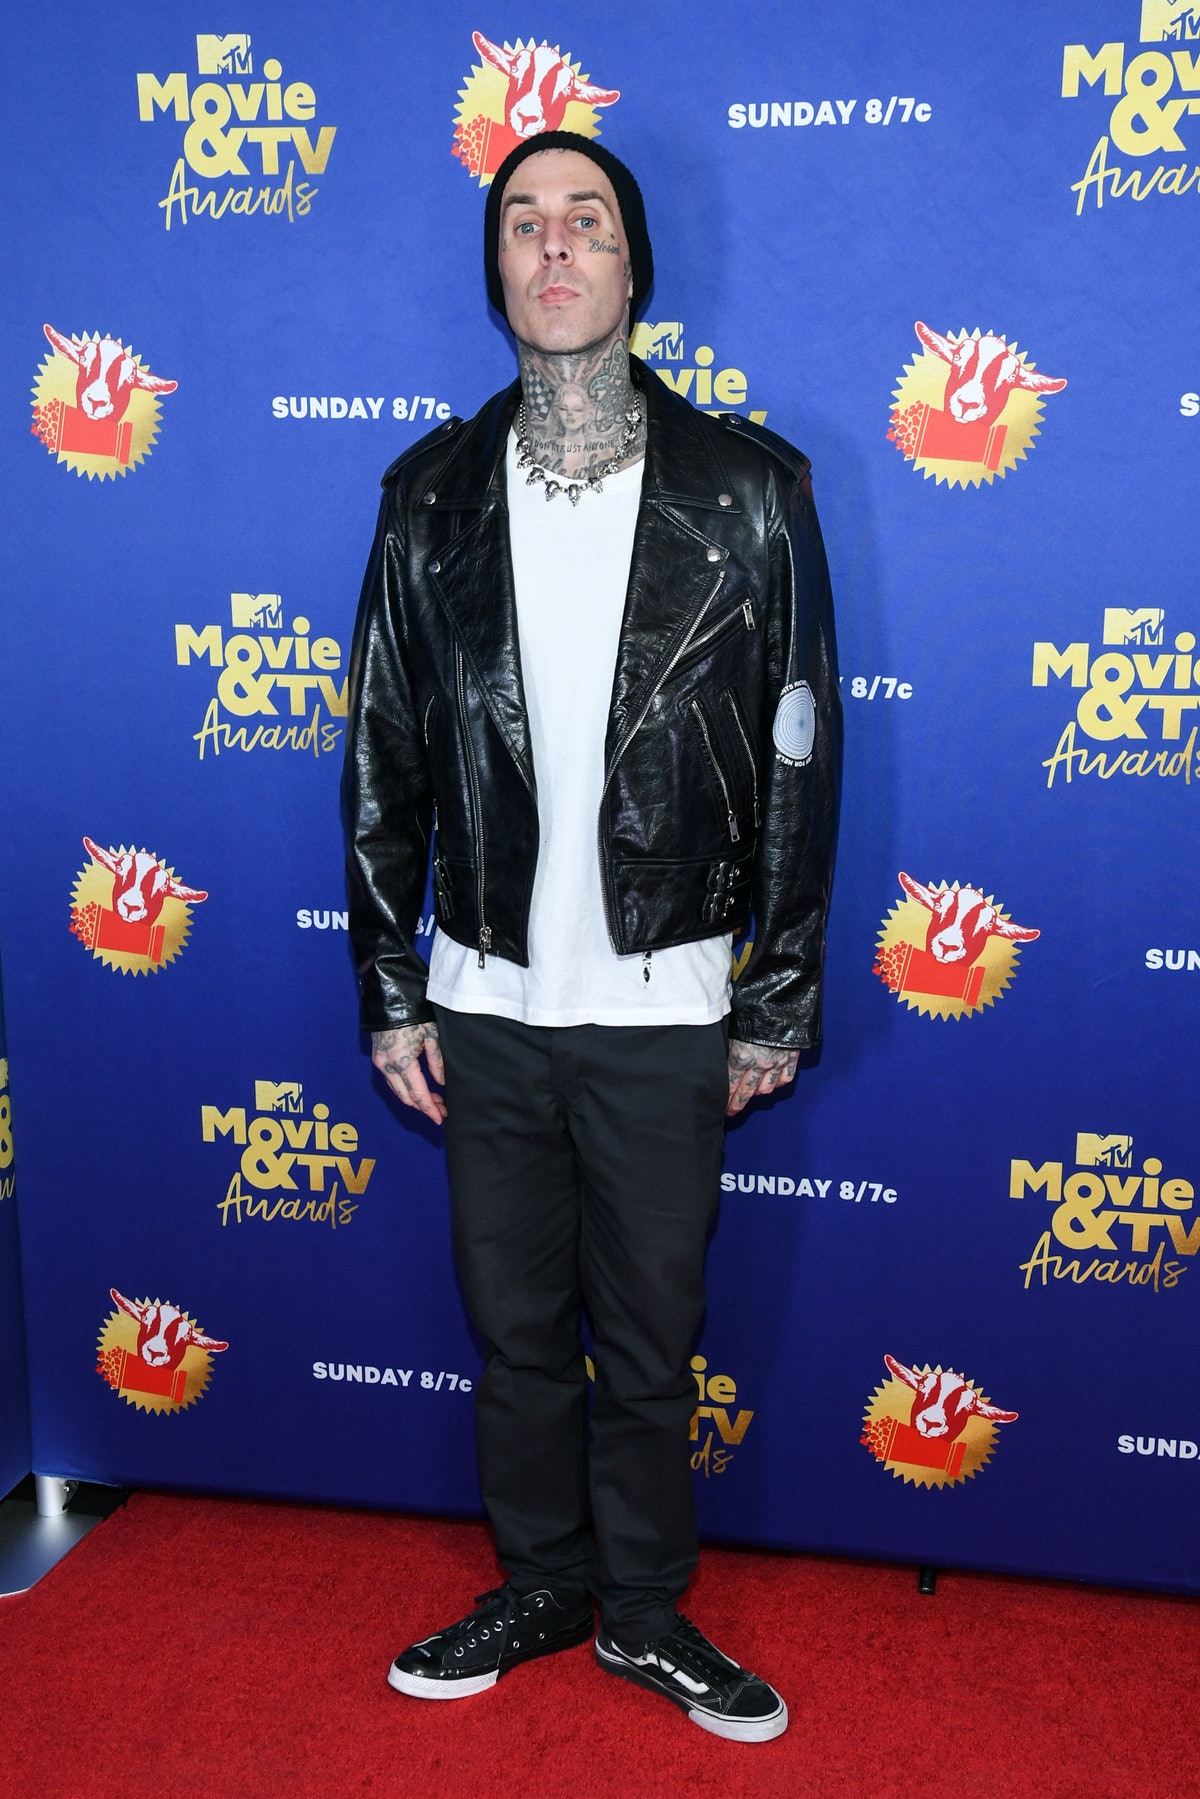 UNSPECIFIED - DECEMBER 6: In this image released on December 6, Travis Barker attends the 2020 MTV Movie & TV Awards: Greatest Of All Time broadcast on December 6, 2020. (Photo by Kevin Mazur/2020 MTV Movie & TV Awards/Getty Images for MTV Communications) (Photo by Kevin Mazur/2020 MTV Movie & TV Awards/Getty Images)